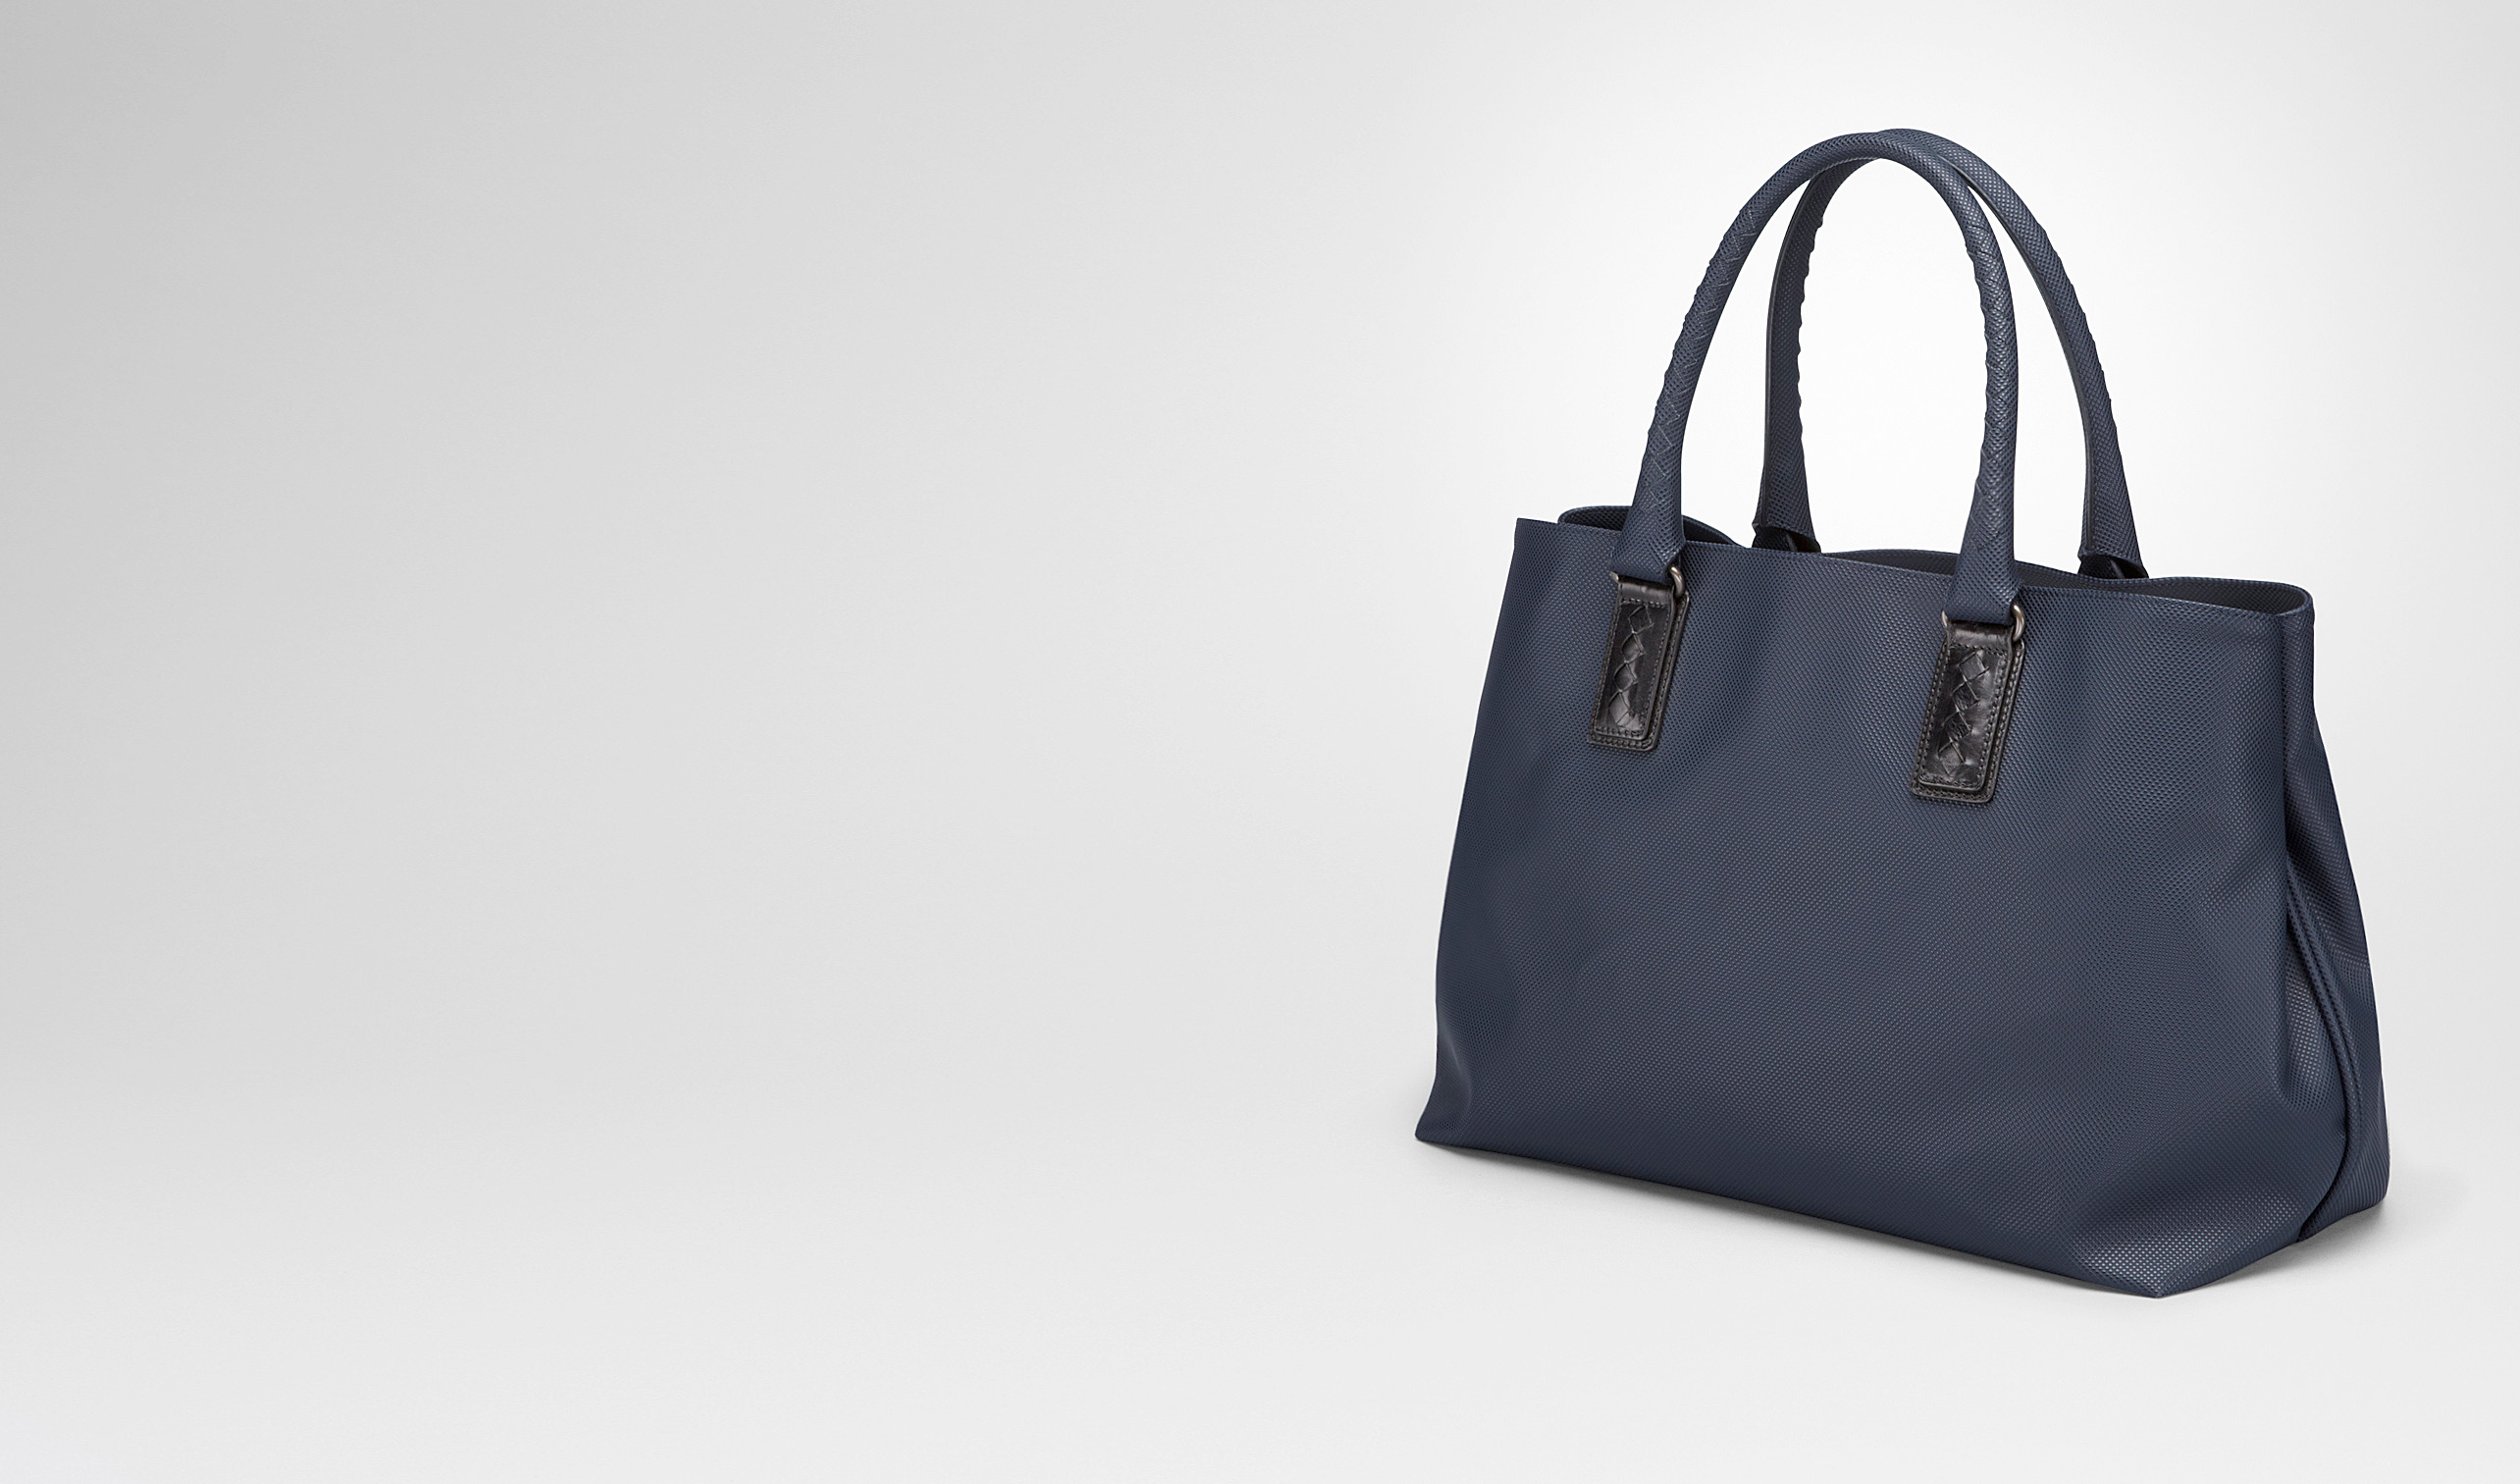 BOTTEGA VENETA Shopper E TOTE BAG IN DARK NAVY MARCOPOLO pl